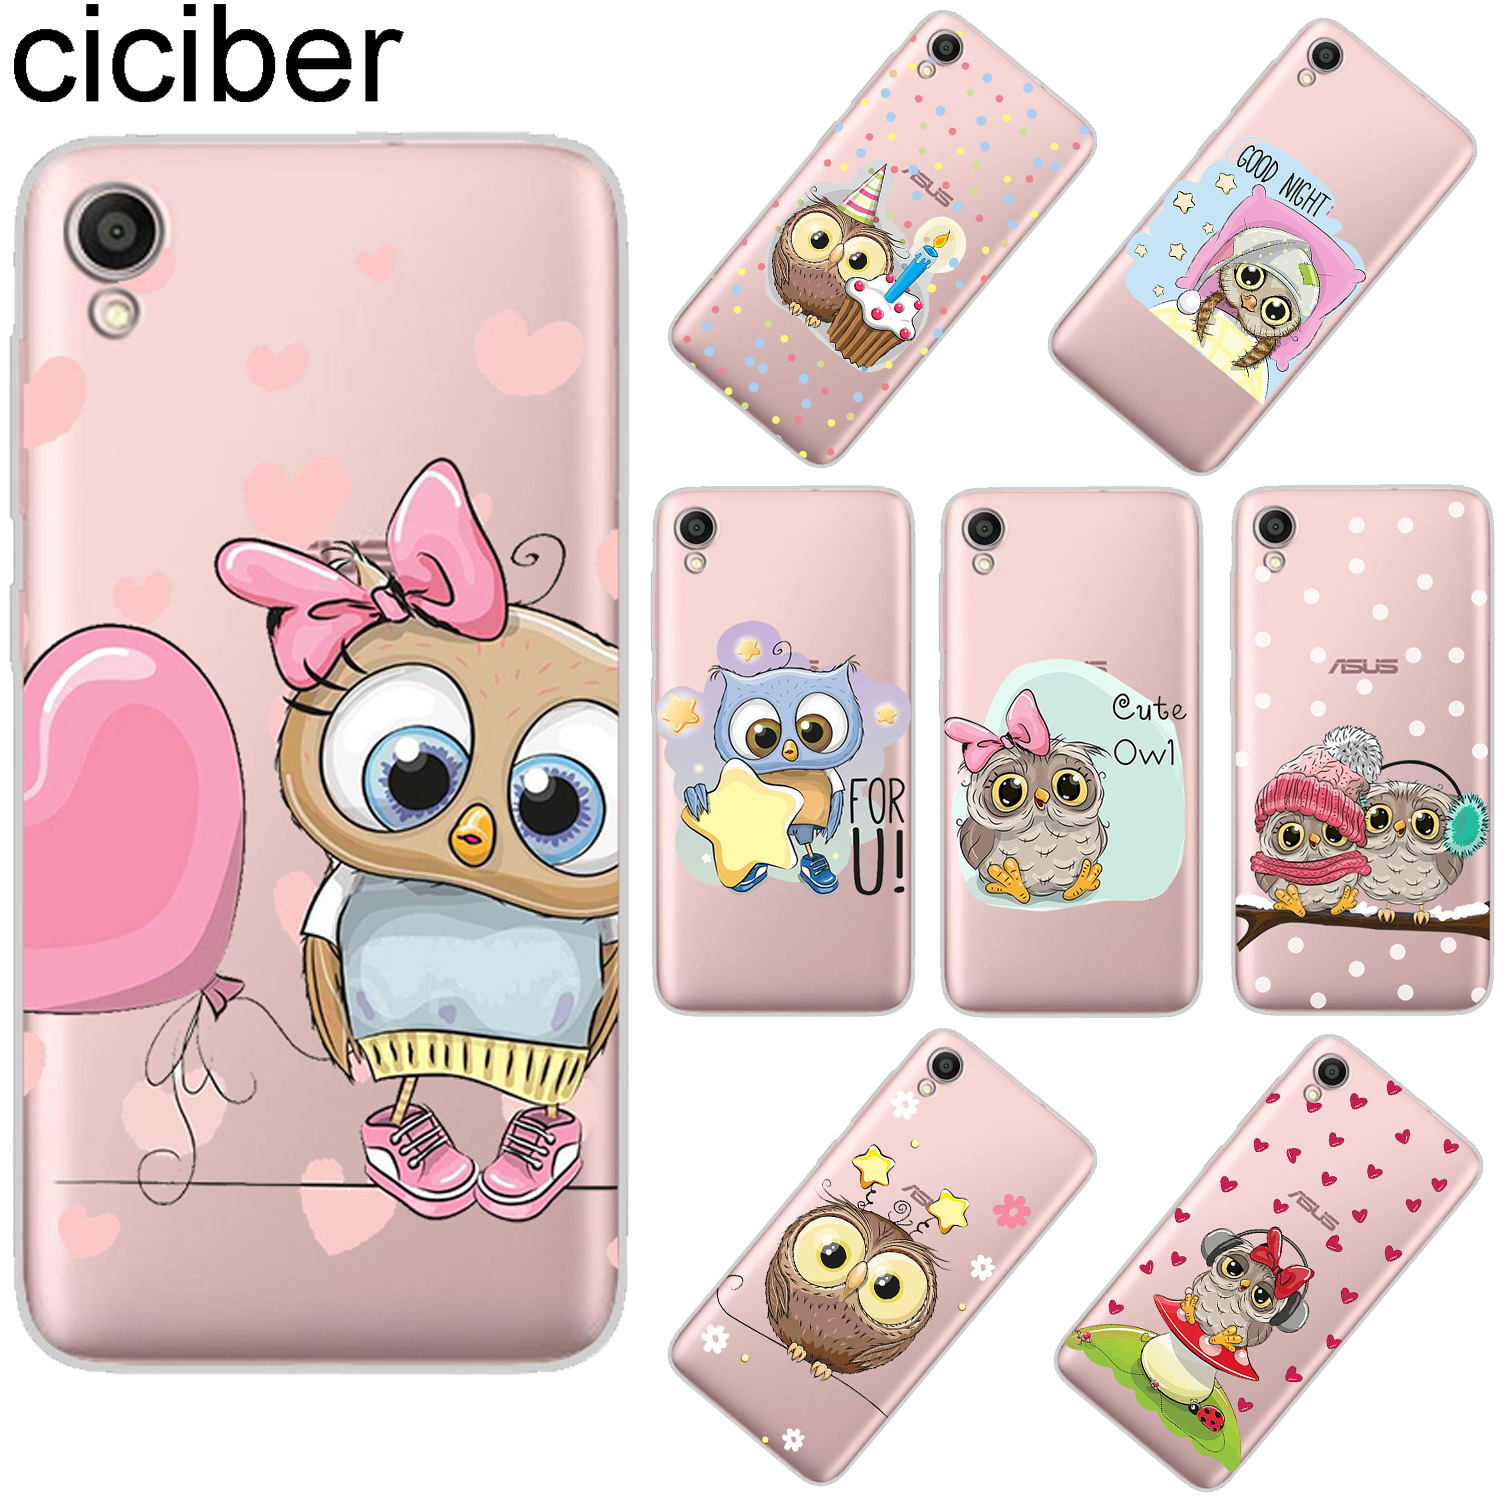 ciciber Cute Owl For ASUS ZenFone Live L1 V 3 GO Zoom S Soft TPU Phone Cases For ASUS ZenFone MAX Lite Plus Pro M1 Fundas Coque in Fitted Cases from Cellphones Telecommunications